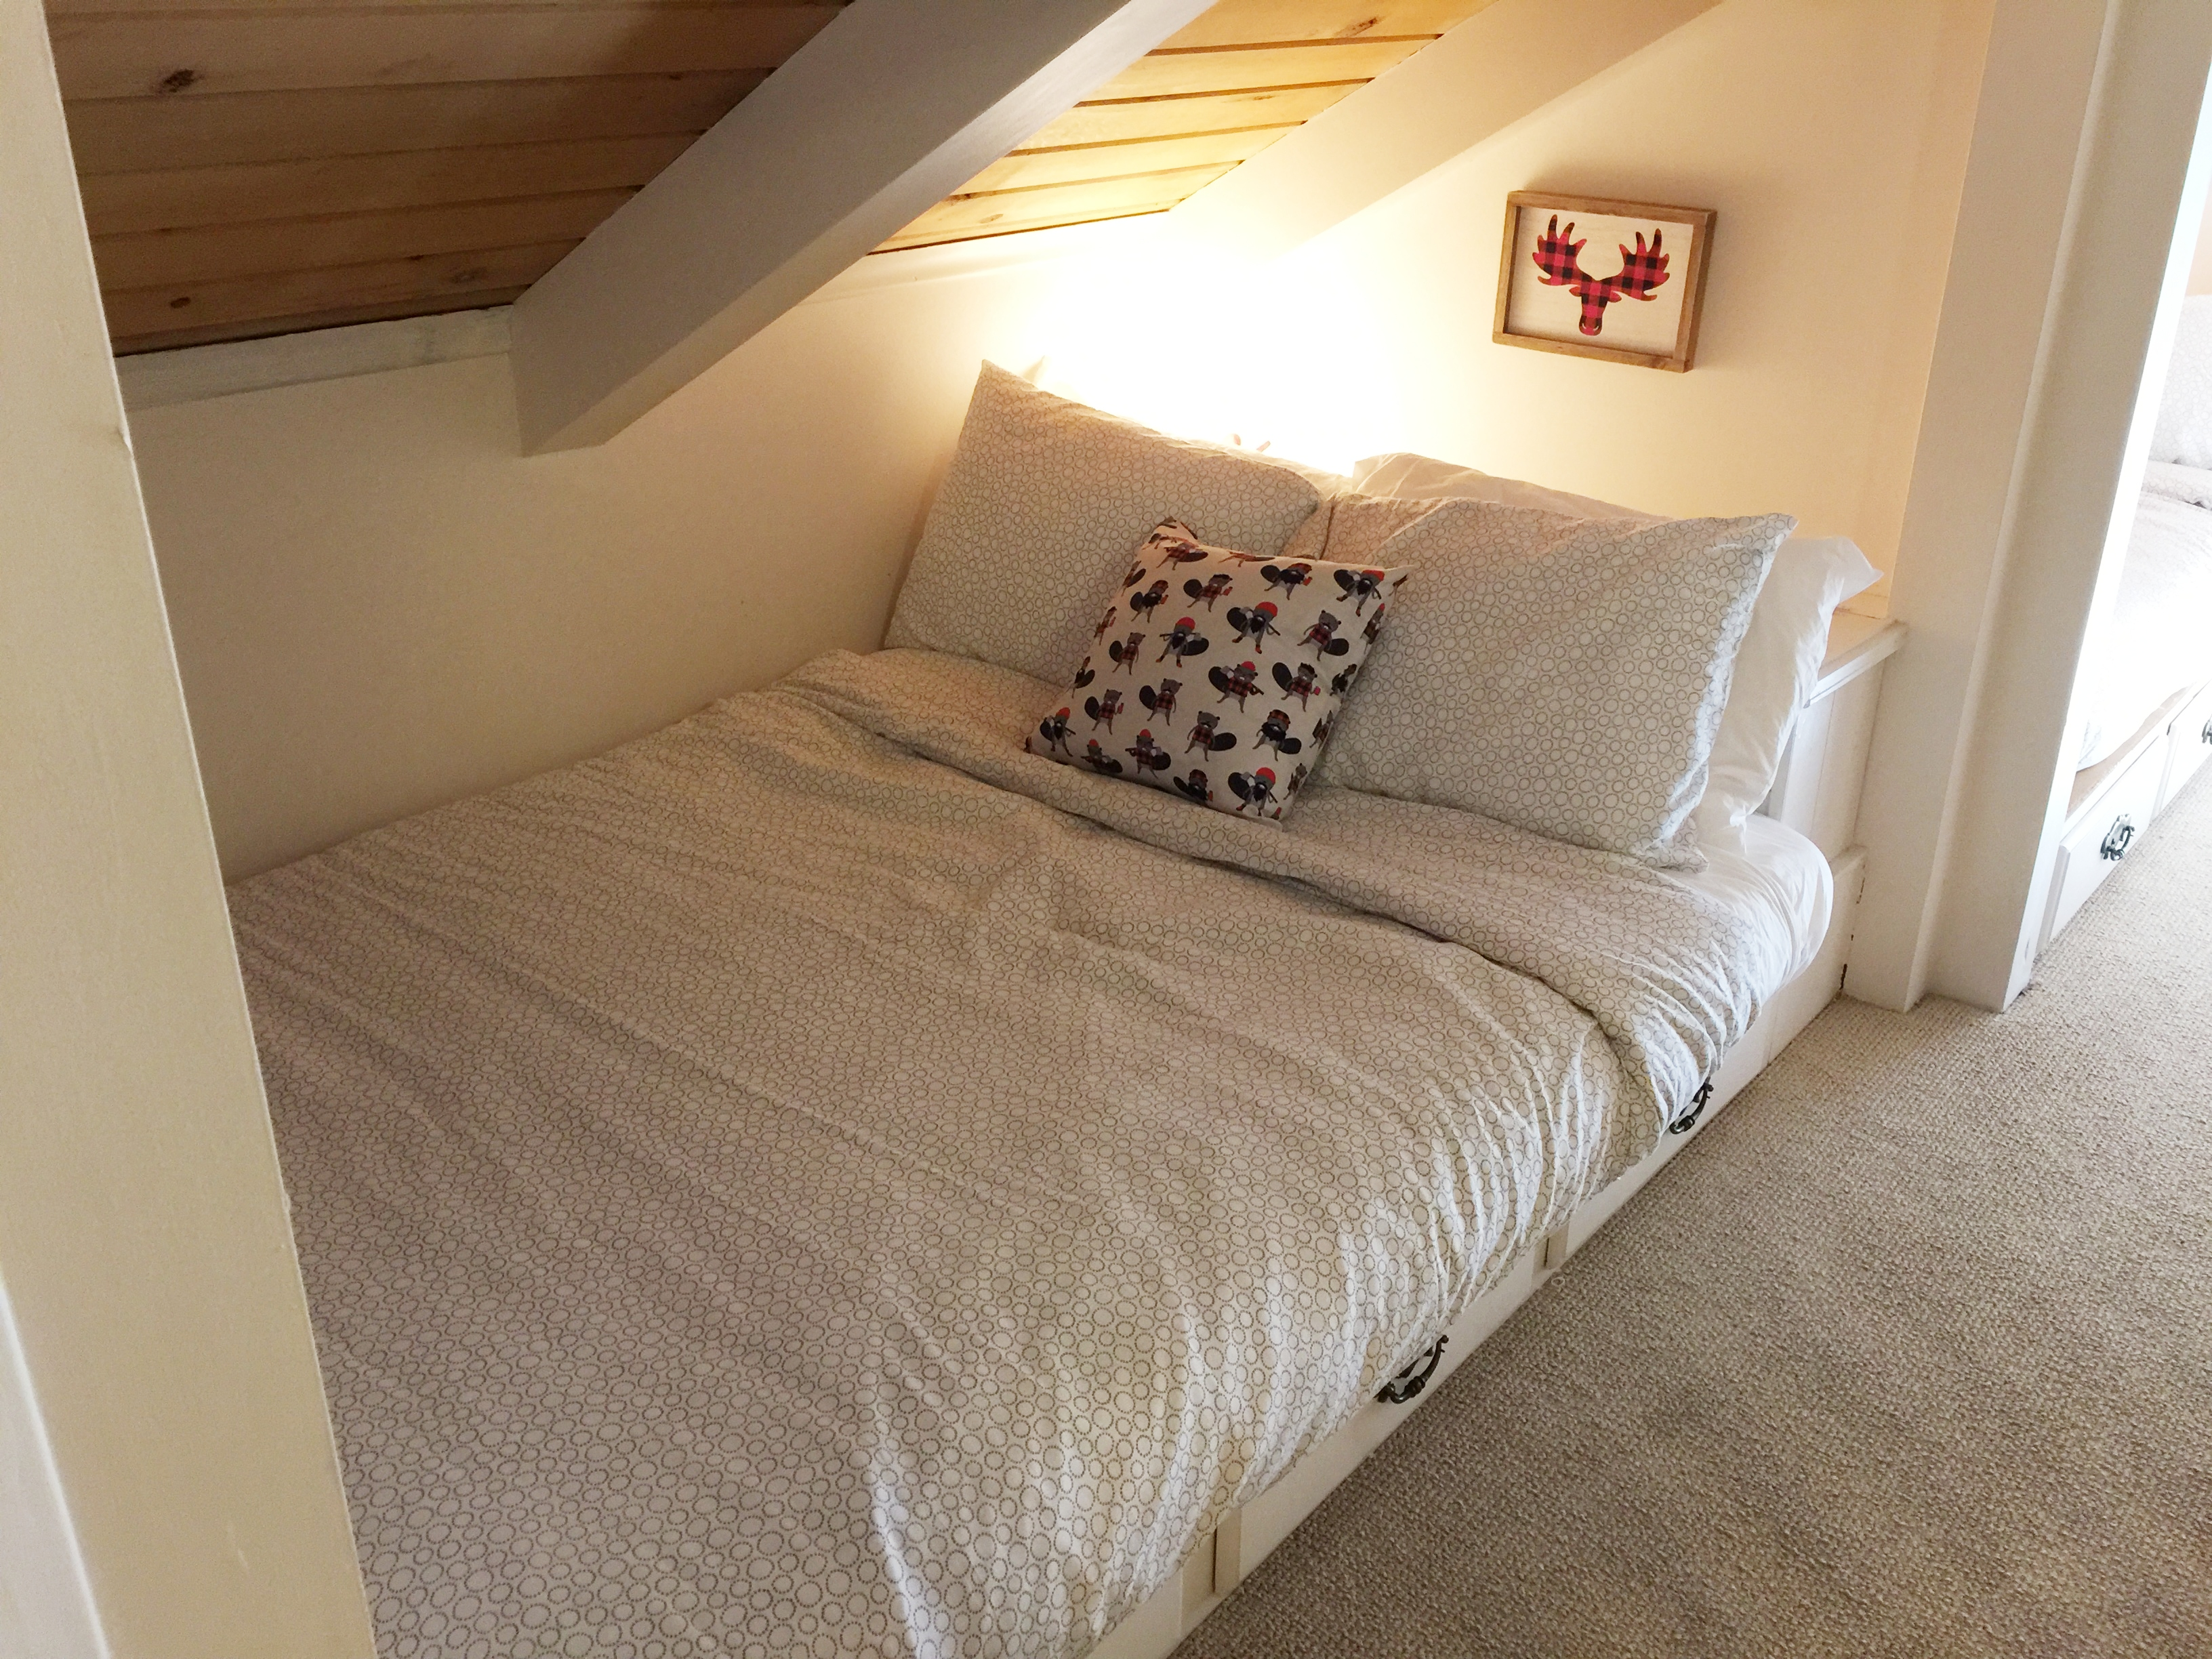 2nd built-in full-size bed for 2